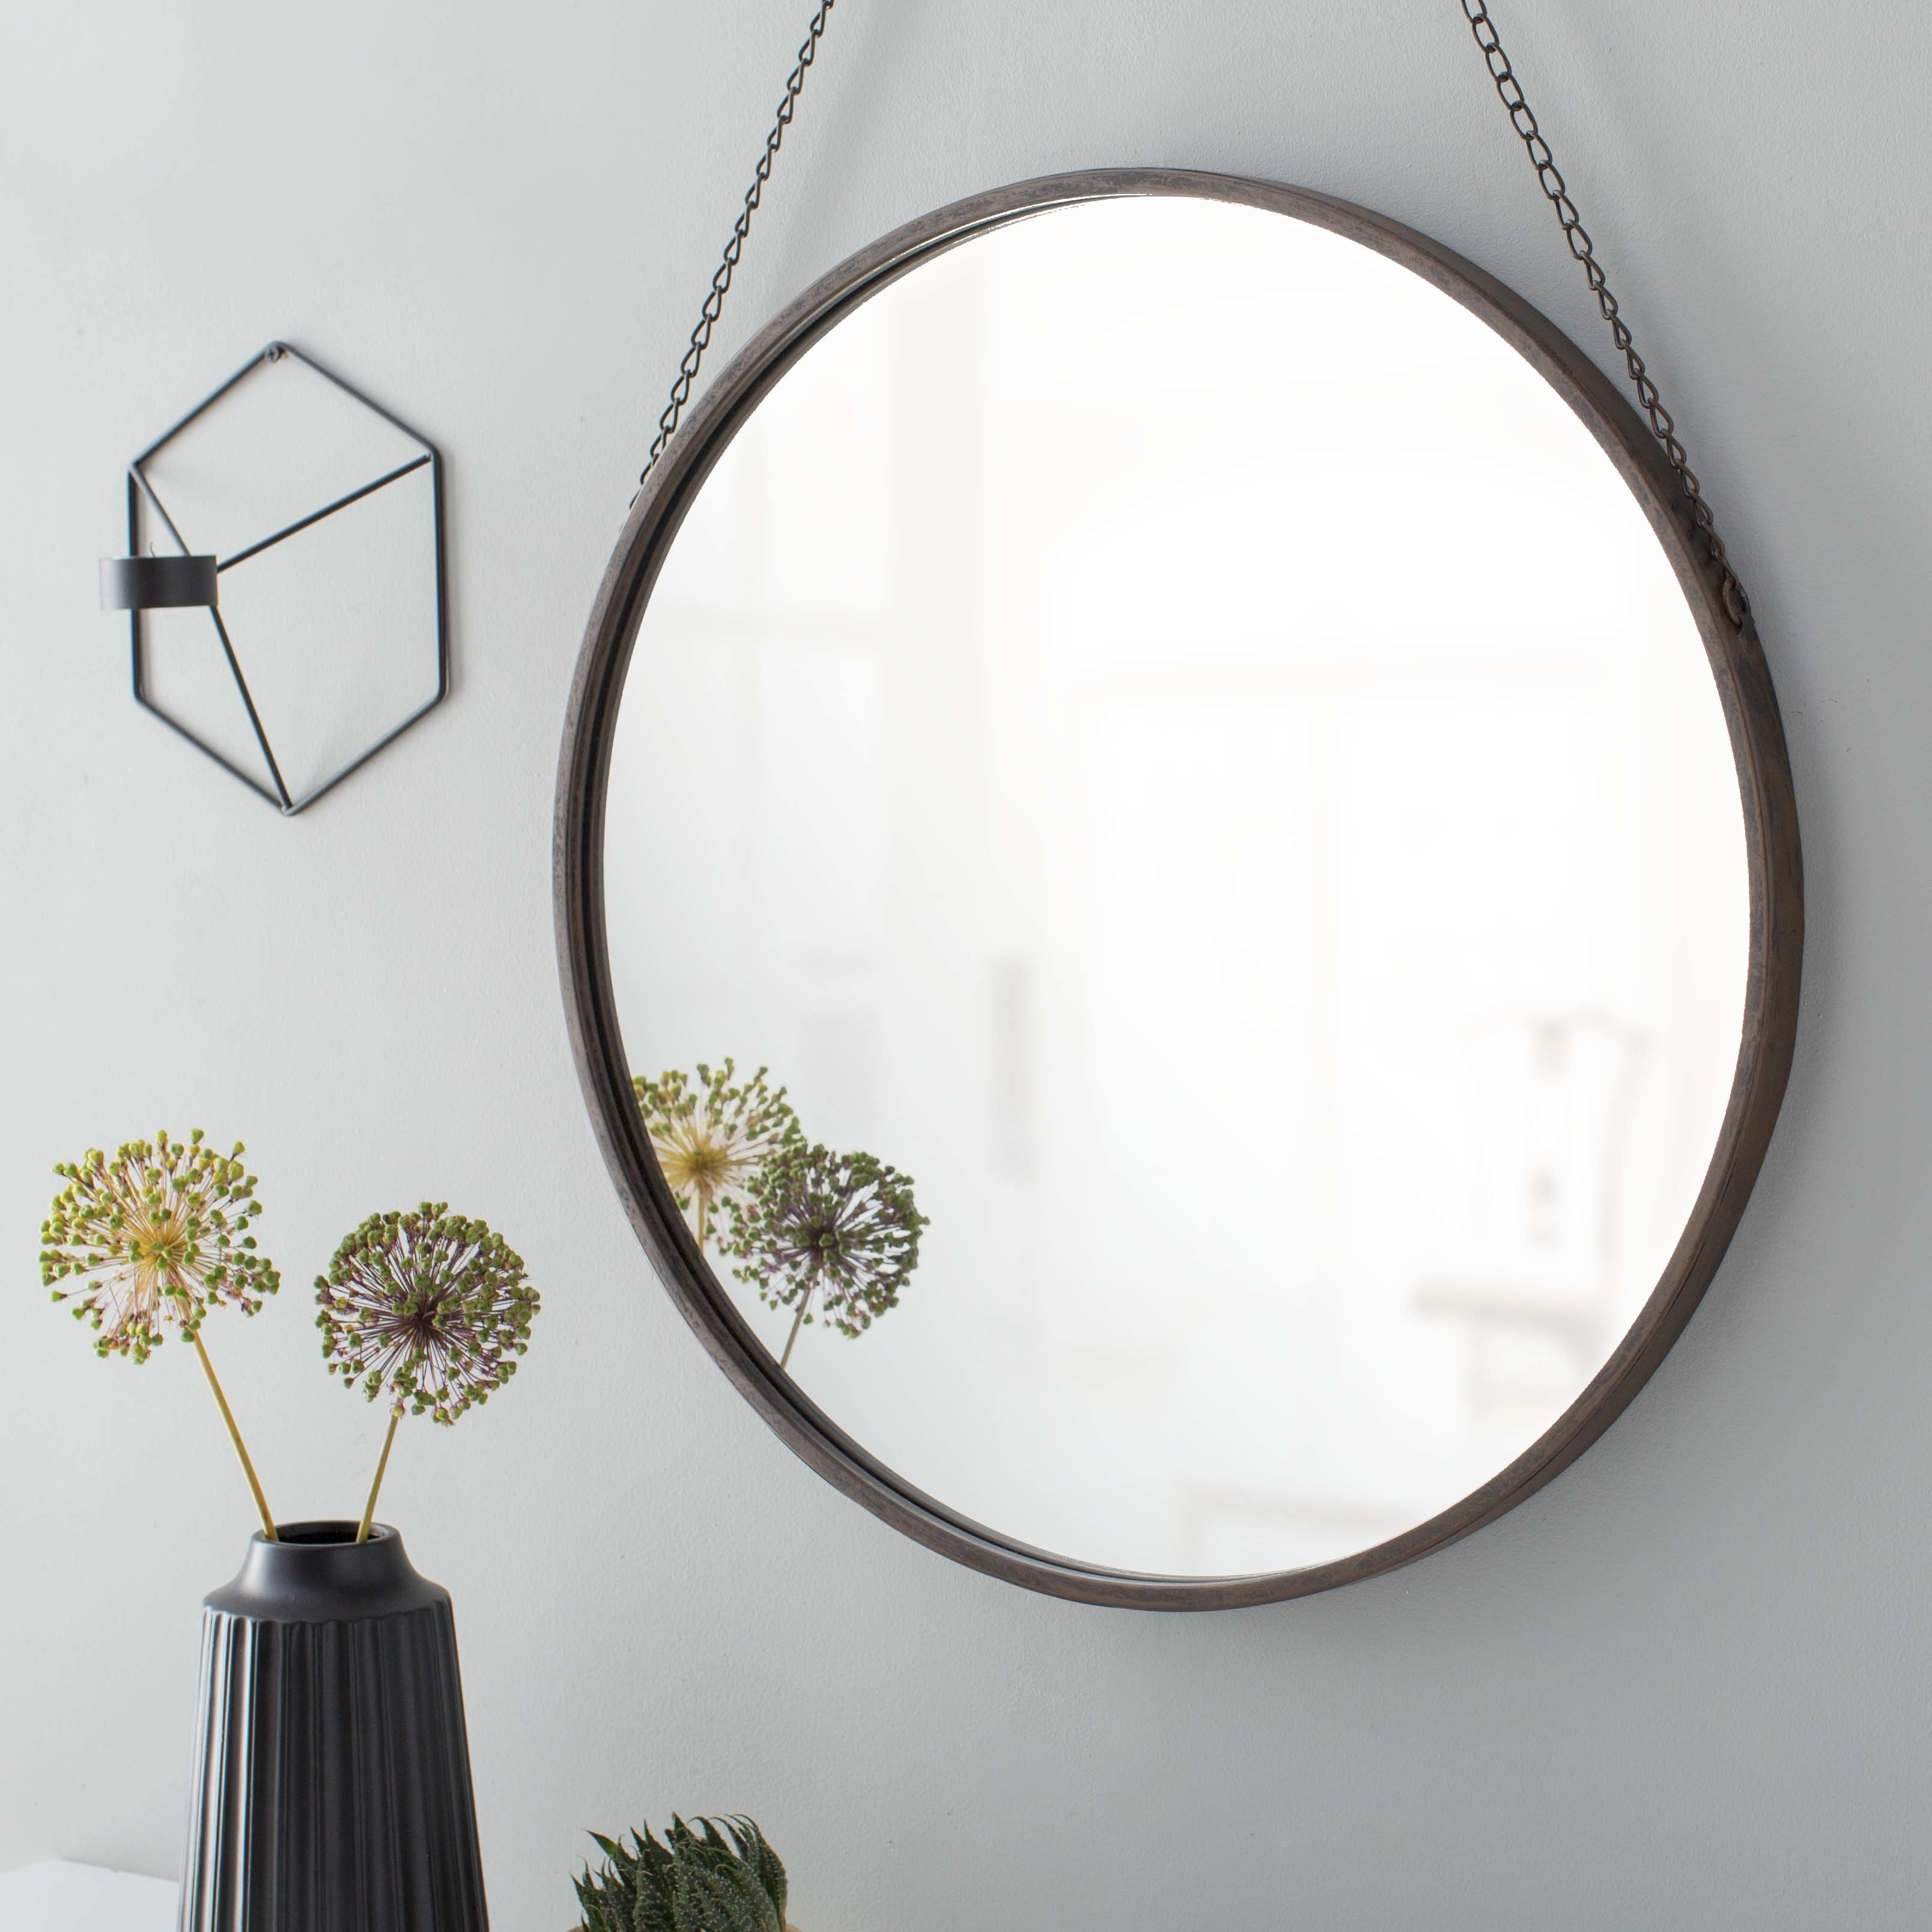 Modern Metal Round Wall Mirrors | Allmodern For Matthias Round Accent Mirrors (Image 15 of 20)